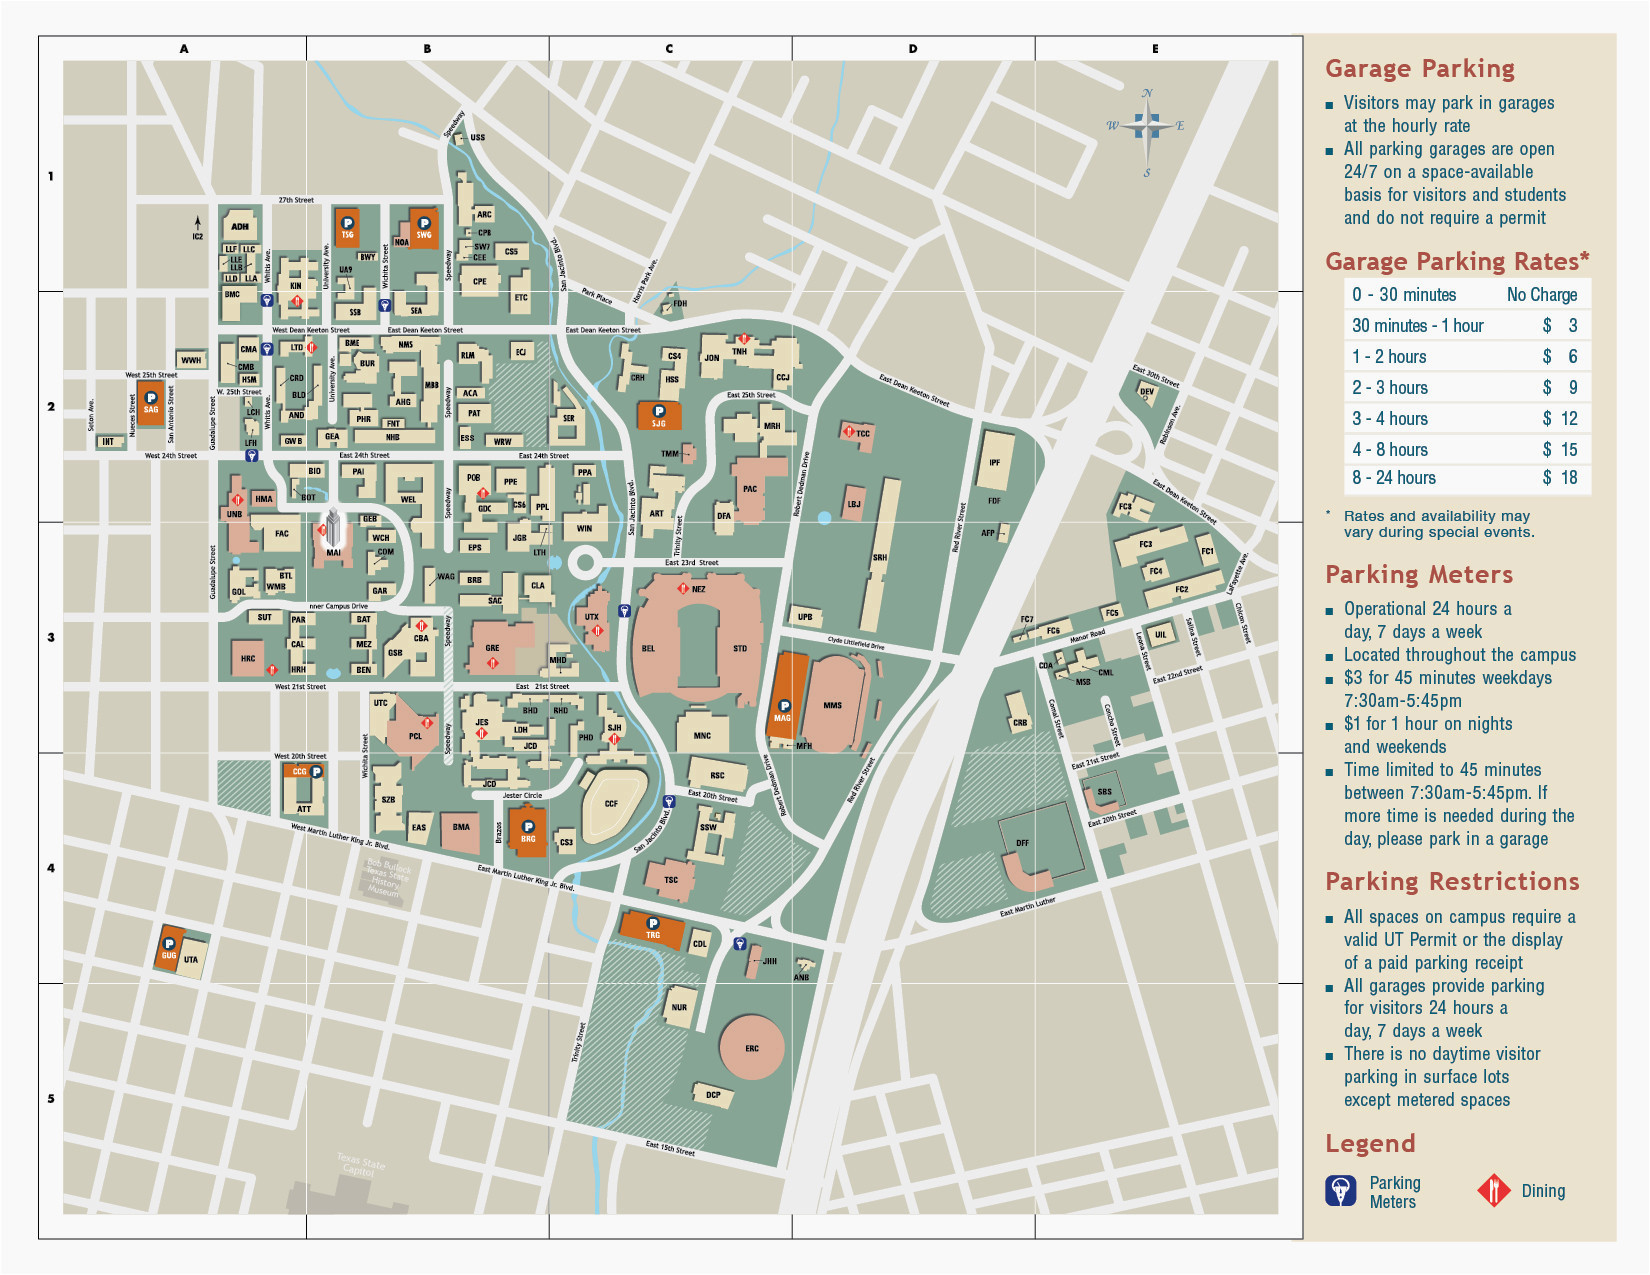 University Of Texas Campus Map | secretmuseum on richland college dallas texas campus map, ut dallas soccer field map, ut dallas community map, utd map, ut knox campus map, ut dallas computer science, ut health science campus map, ut southwestern dallas map, university of dallas map, ut tyler campus map, ut hospital knoxville tn map, ut dallas academics, ut martin campus map, ut dallas housing, unt dallas campus map, ut pan am campus map, ut building map, ut dallas commencement, ut dallas activity center, ut dallas library,